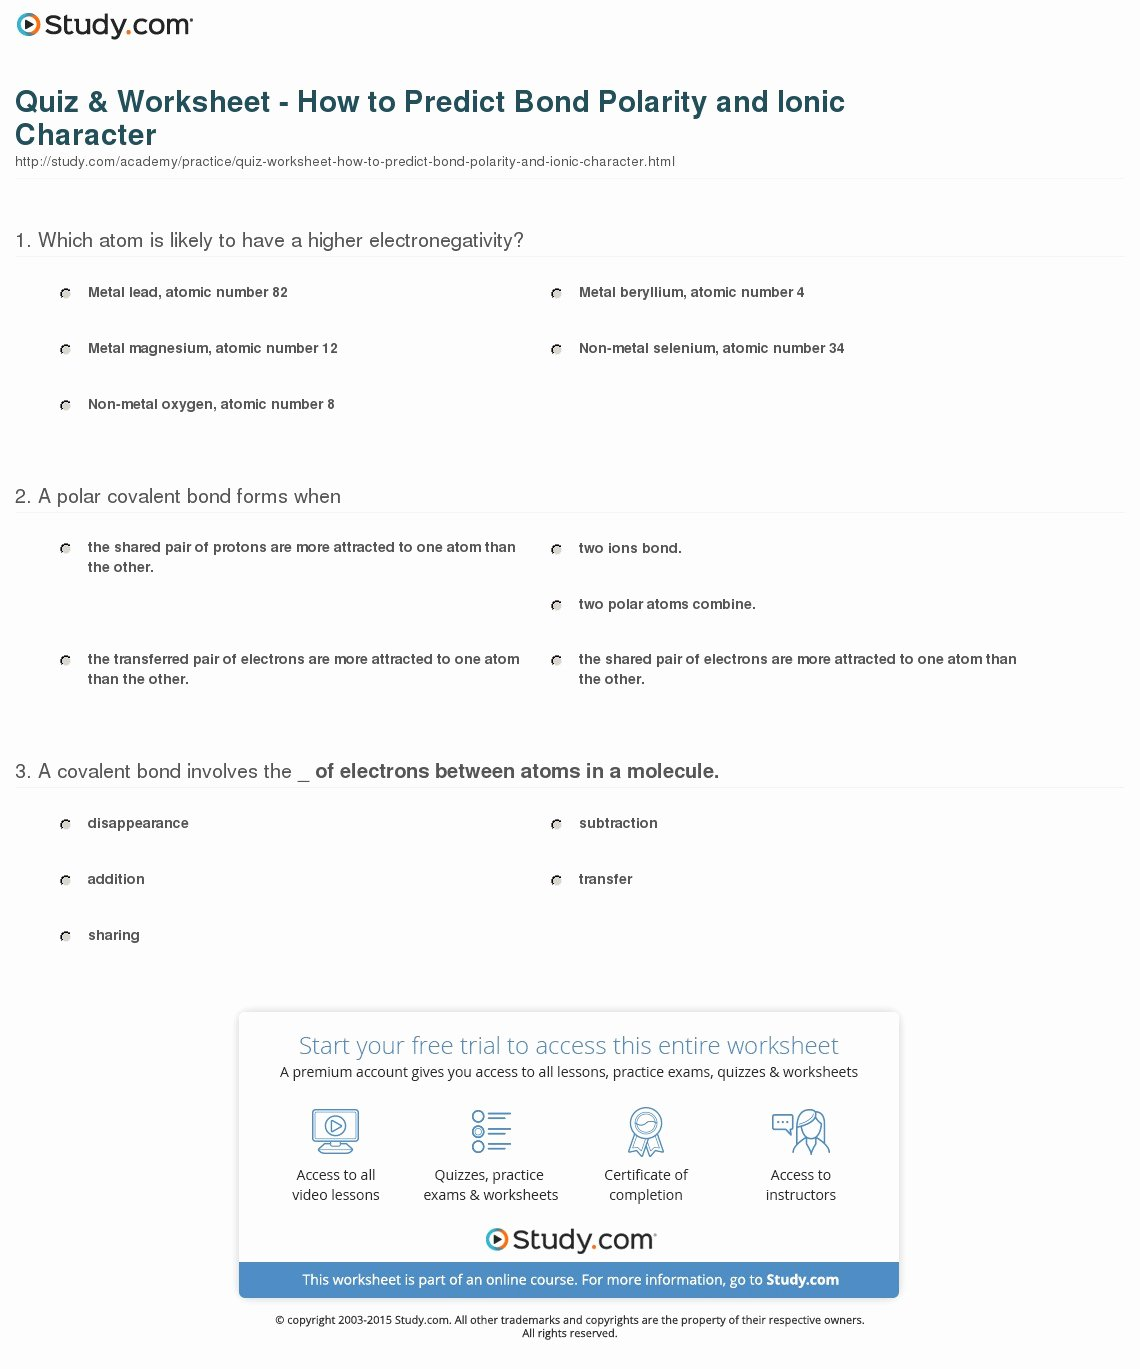 Worksheet Polarity Of Bonds Answers Fresh Quiz & Worksheet How to Predict Bond Polarity and Ionic